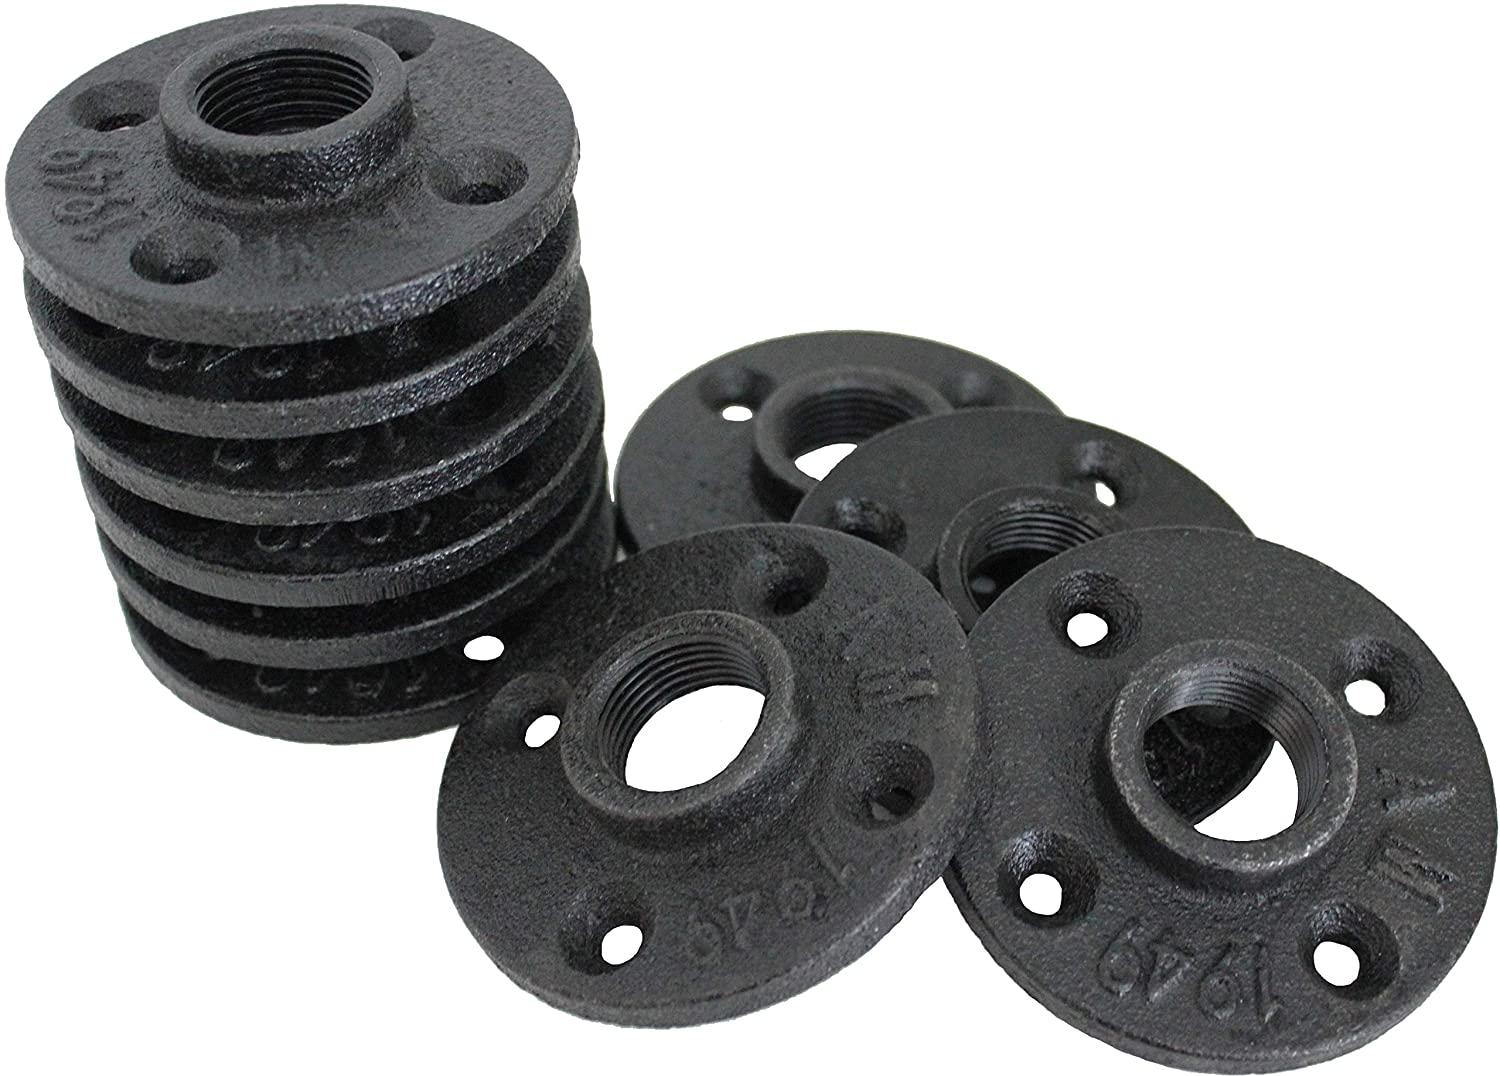 3//4 Malleable Black Iron Floor Flange Threaded Bearing Pipe Fittings for Industrial Furniture//DIY Decor 3//4 inch by NODNAL Co. 10 Pack Flanges